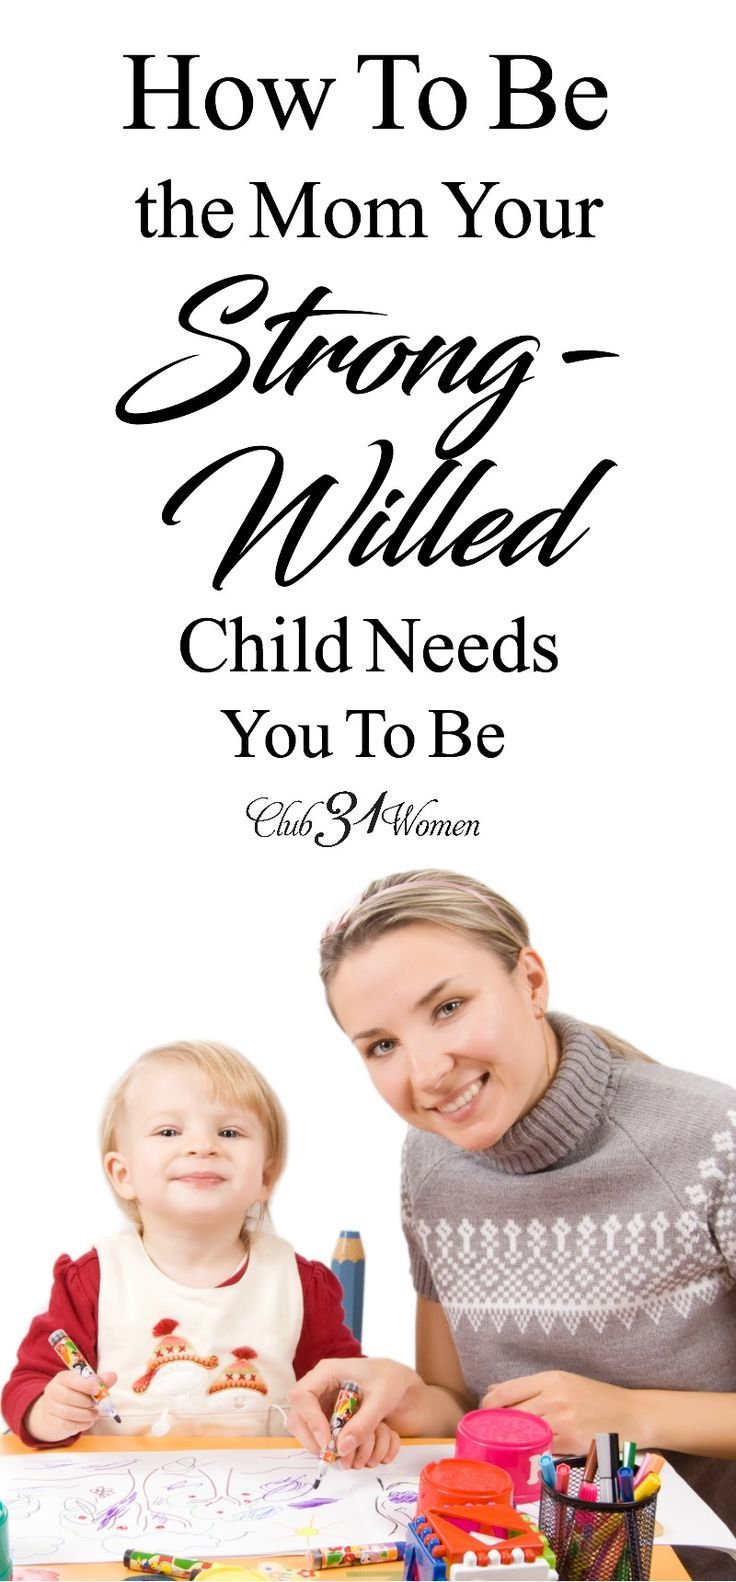 Do you have a strong-willed child? Wonder how you can be the best mom to such a determined kid? Here's encouraging and helpful advice from a mom who knows! ~ Club31Women via @Club31Women